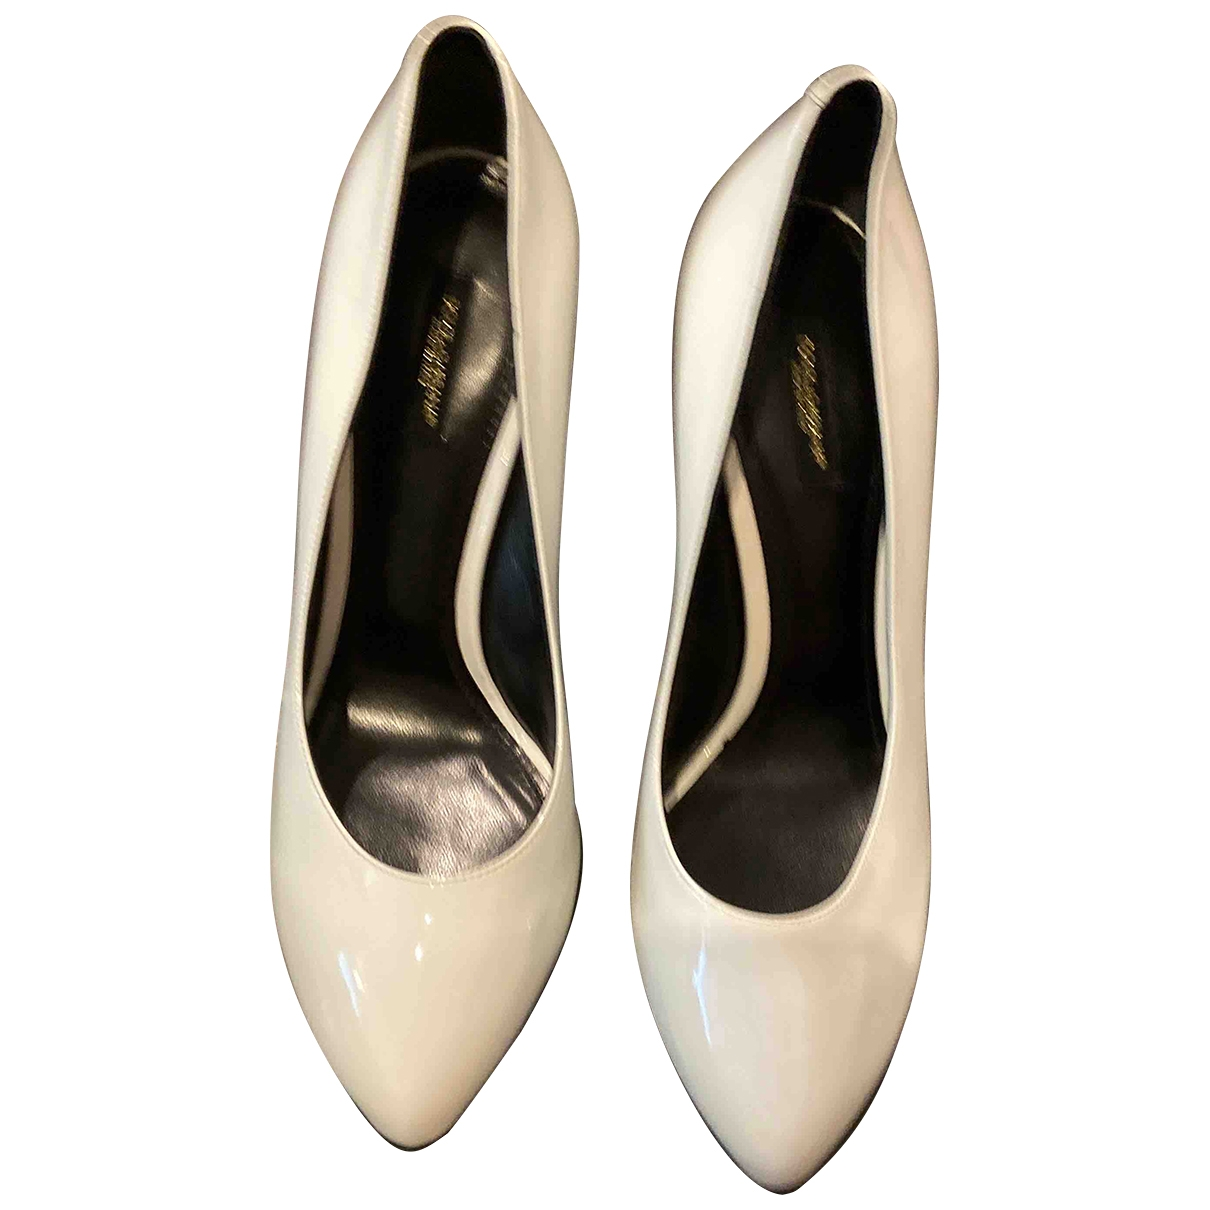 Dolce & Gabbana \N White Patent leather Heels for Women 40 EU